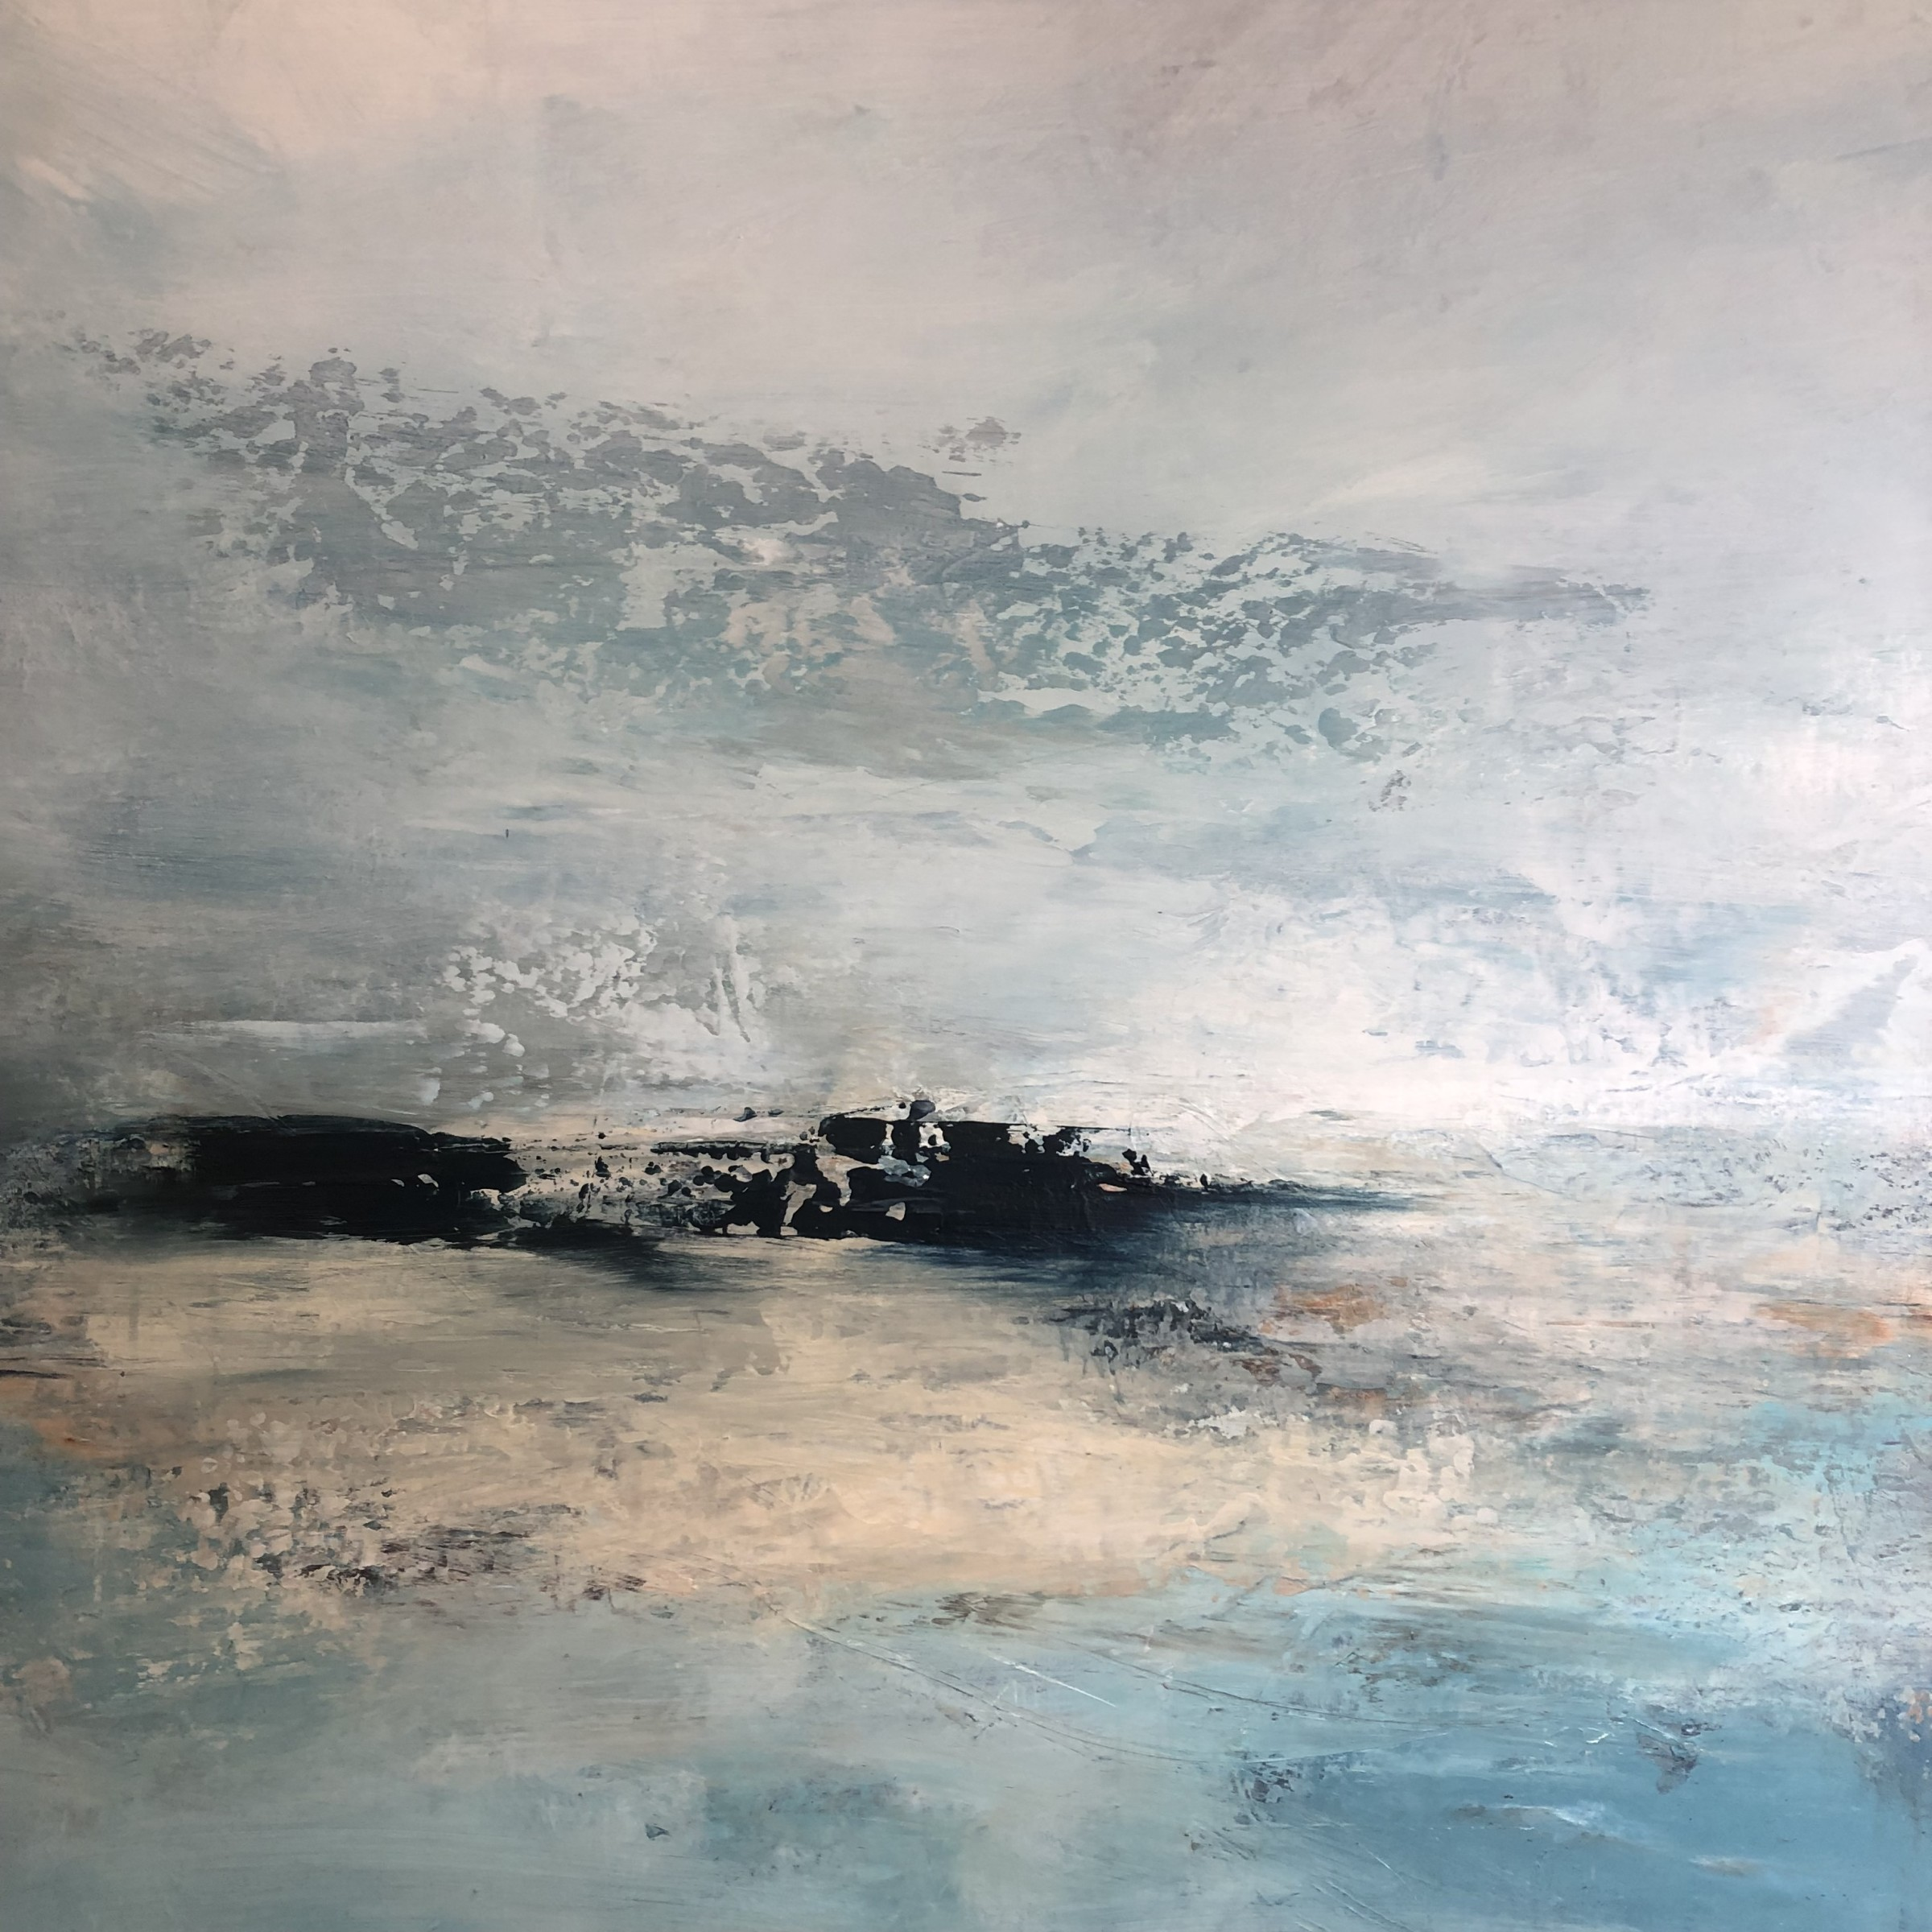 "<span class=""link fancybox-details-link""><a href=""/artists/41-erin-ward/works/6489-erin-ward-summer-sky-2019/"">View Detail Page</a></span><div class=""artist""><strong>Erin Ward</strong></div> <div class=""title""><em>Summer Sky</em>, 2019</div> <div class=""signed_and_dated"">Signed, titled and dated</div> <div class=""medium"">Acrylic on canvas</div> <div class=""dimensions"">36 x 36 inches</div><div class=""copyright_line"">Copyright The Artist</div>"